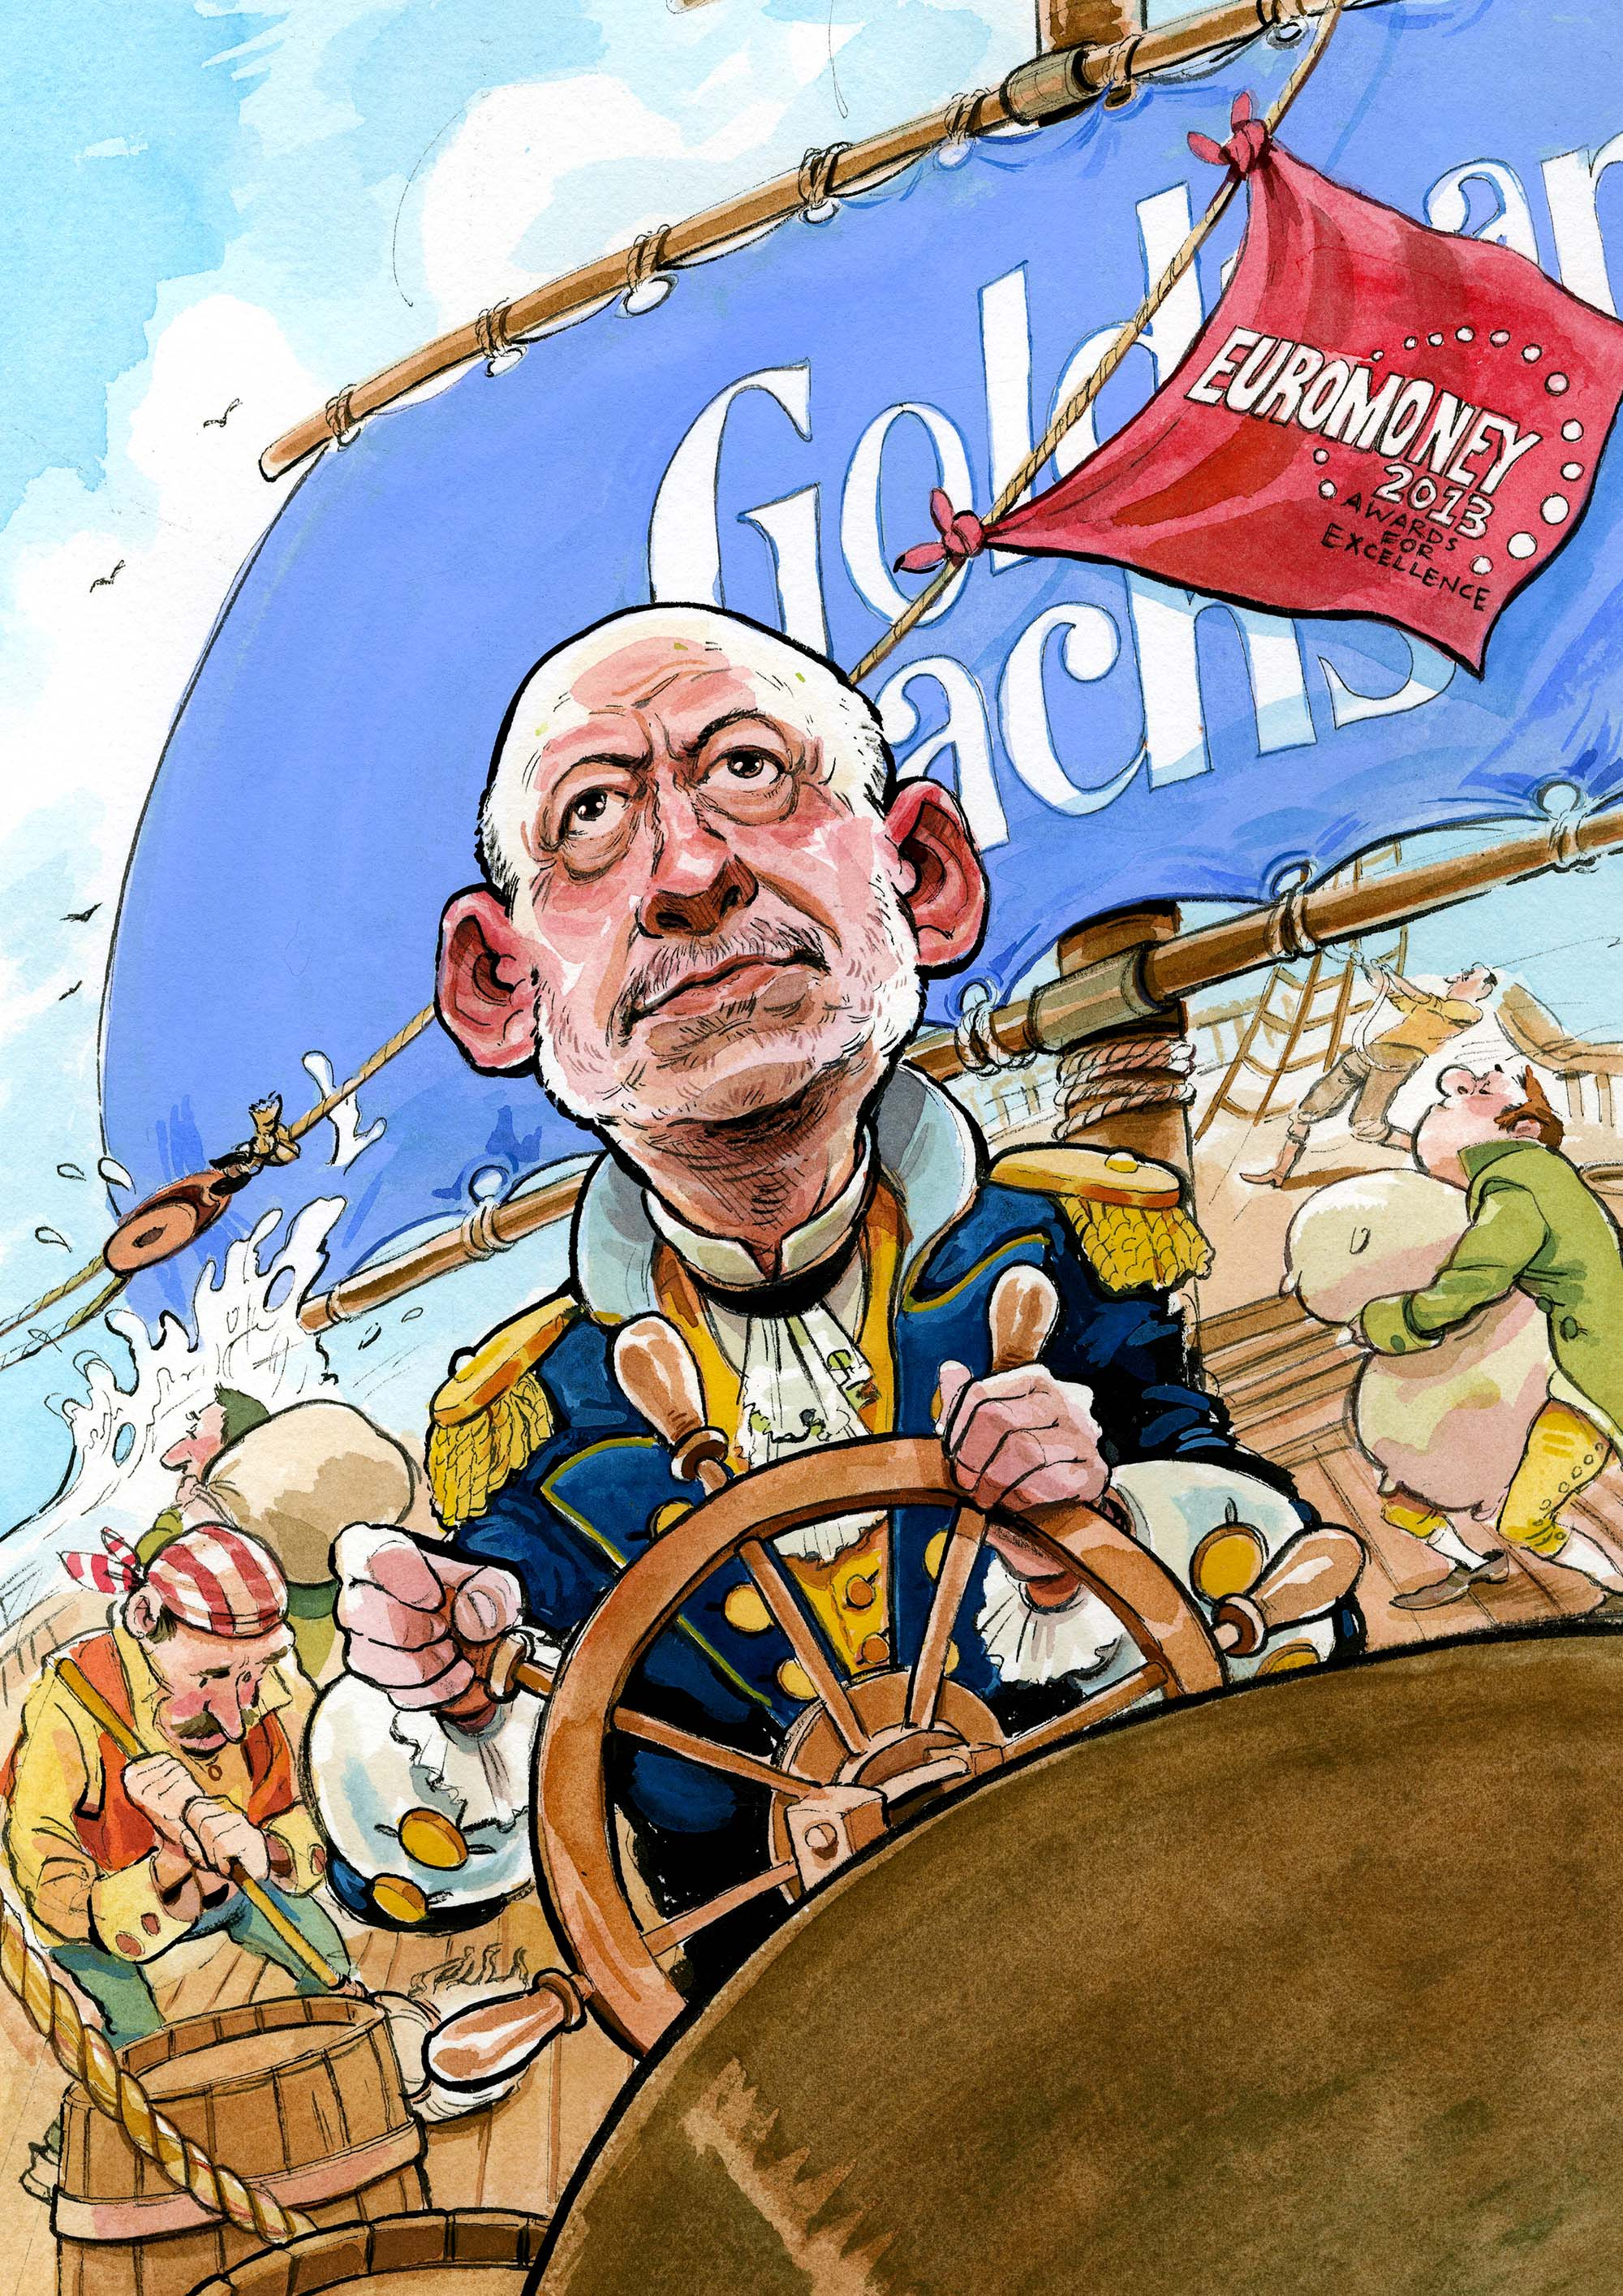 euromoney_lloydblankfein_final-uncropped.jpg